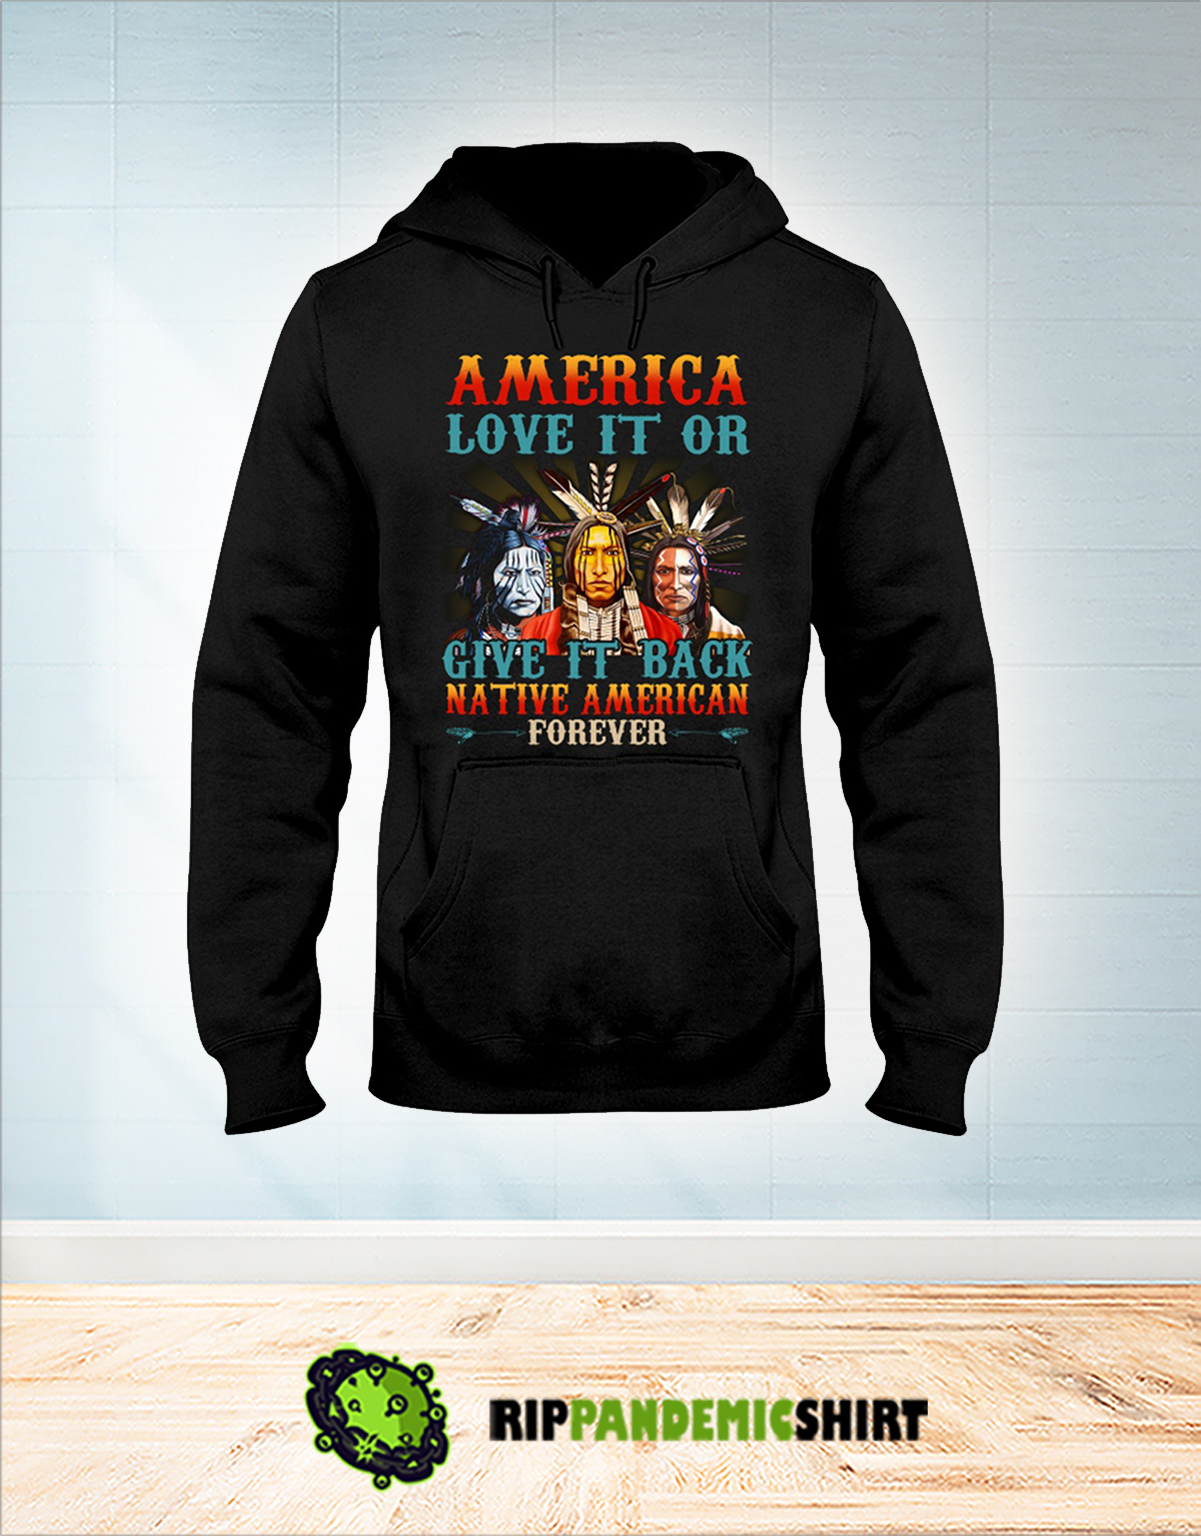 America love it or give it back native american forever hoodie